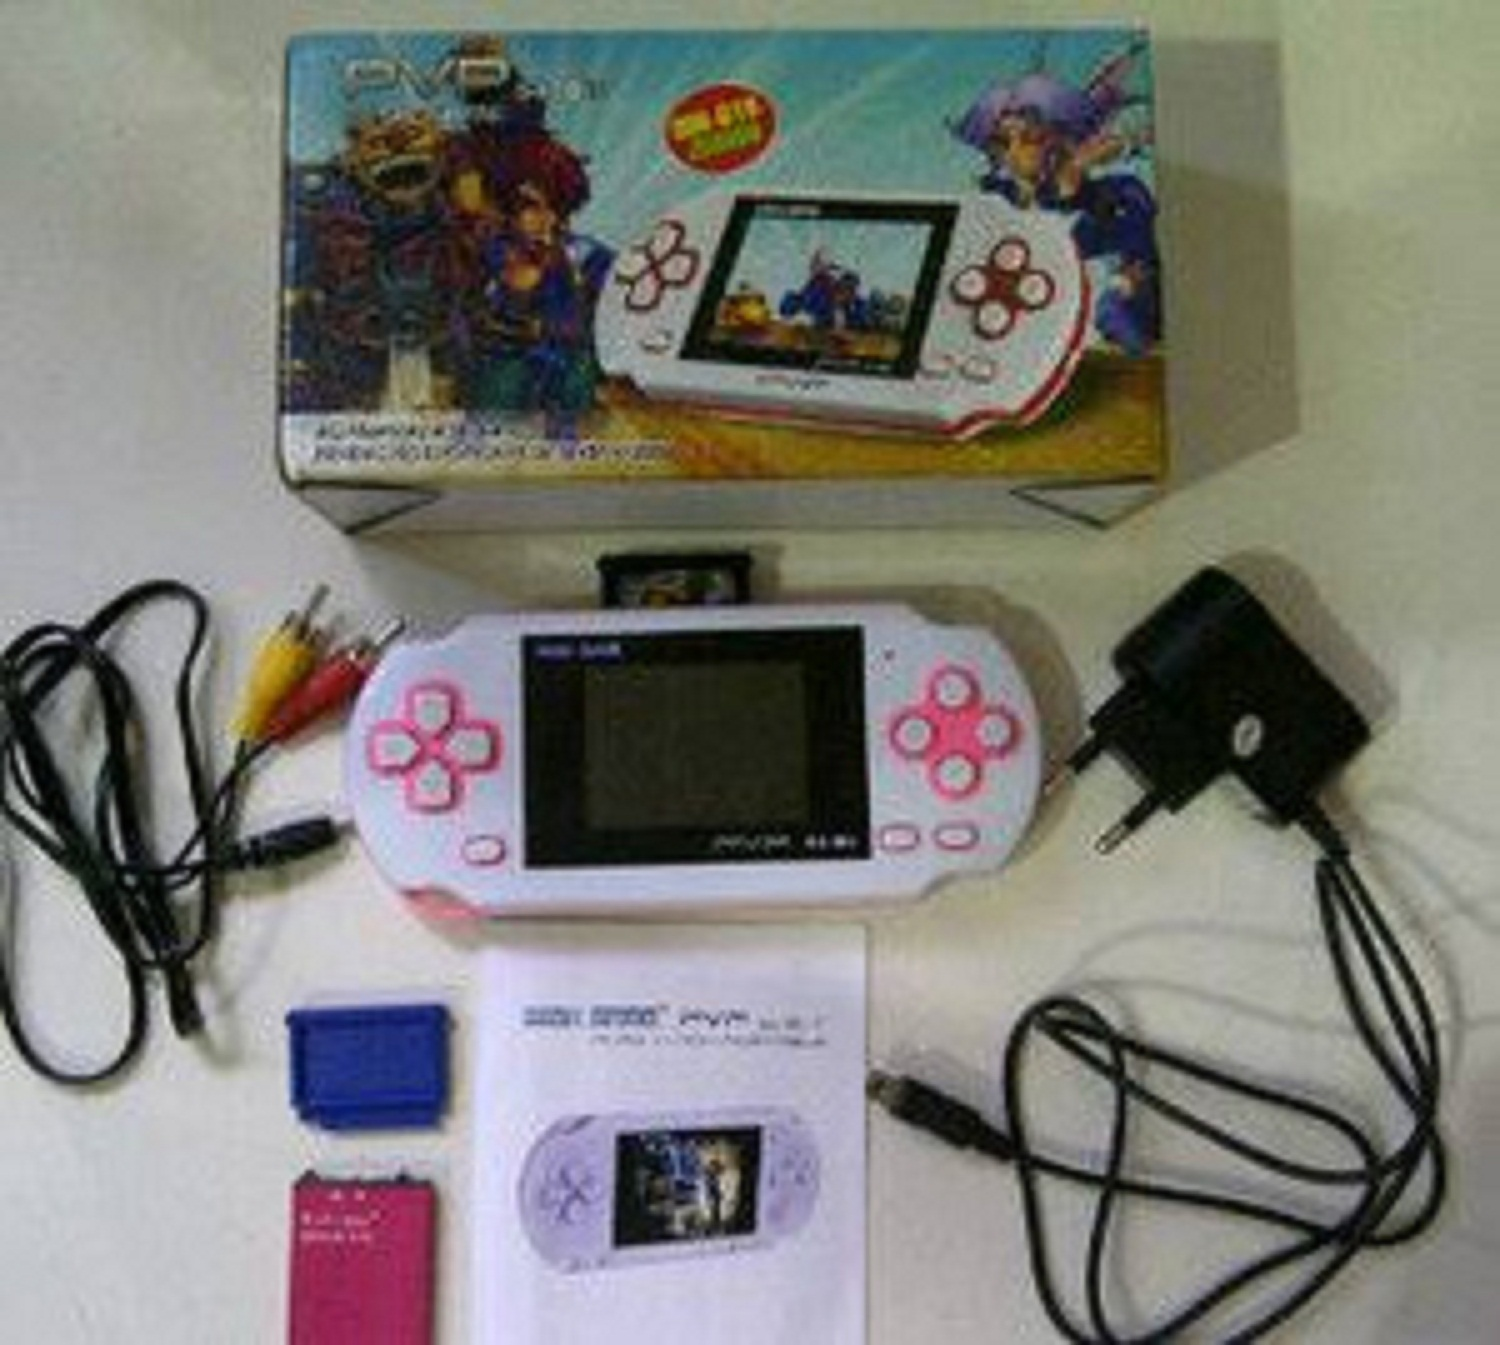 harga PVP 64 Bit Digital Pocket Handled Game Retro Jadul Nintendo Model PSP Tokopedia.com